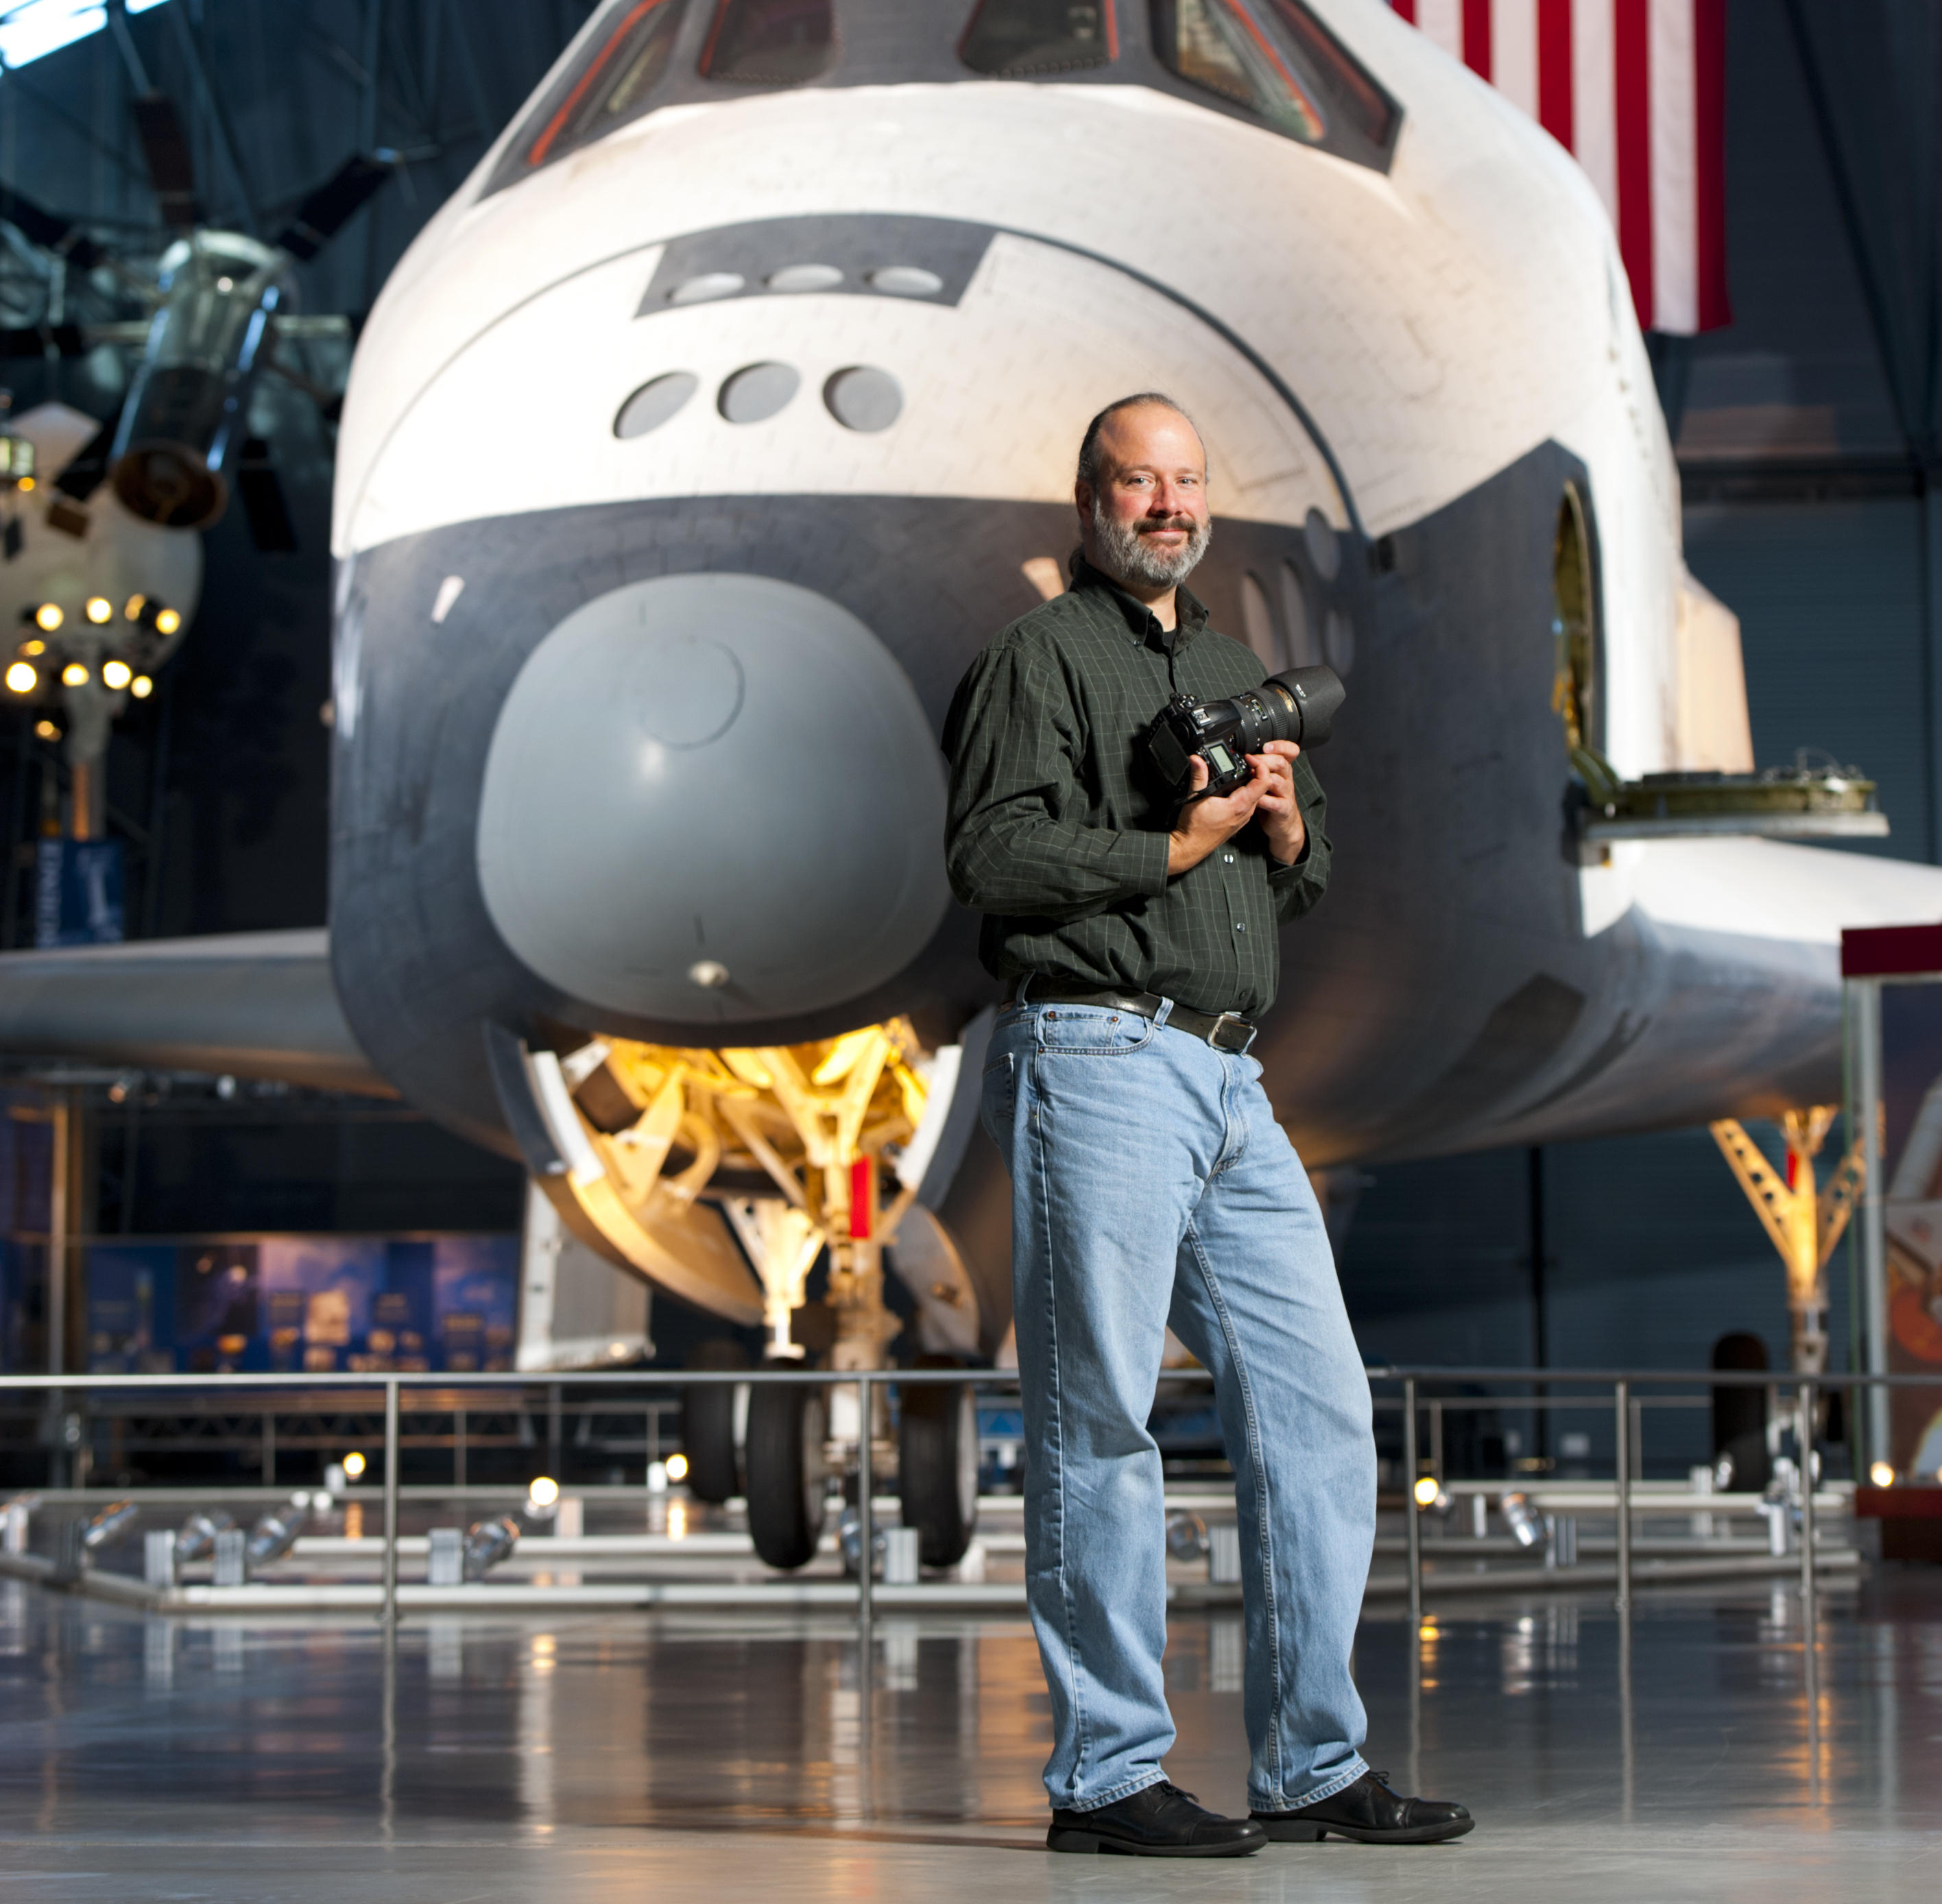 NASA photographer Bill Ingalls stands in front of a space shuttle.